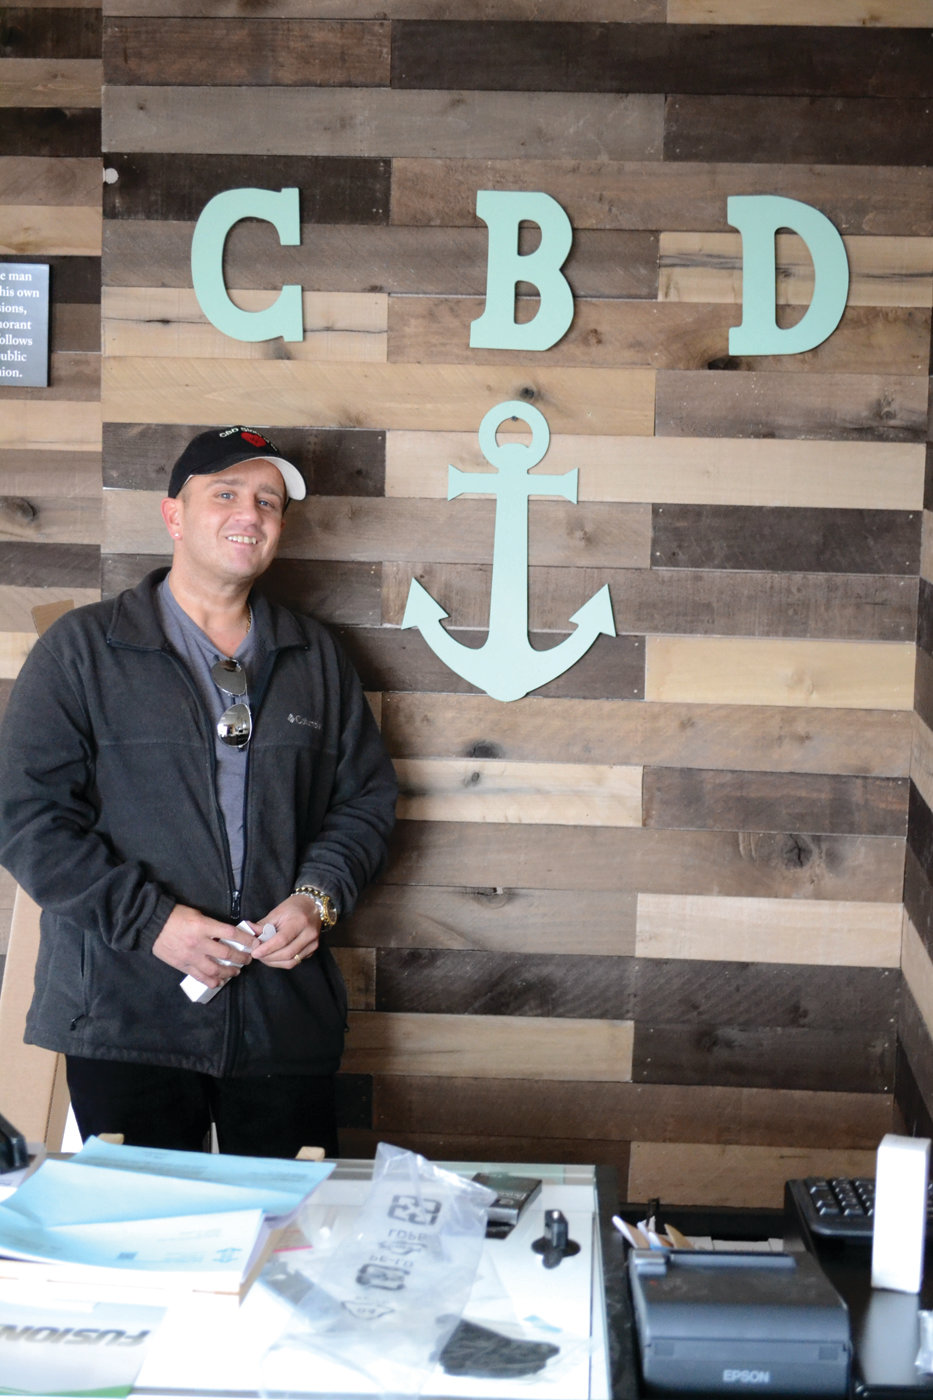 HERE TO HELP: CBD Store owner Mike Lanoue doesn't proclaim that CBD can cure all ailments, but he has firsthand reason to believe in its healing powers. He offers anyone free samples to try for themselves.